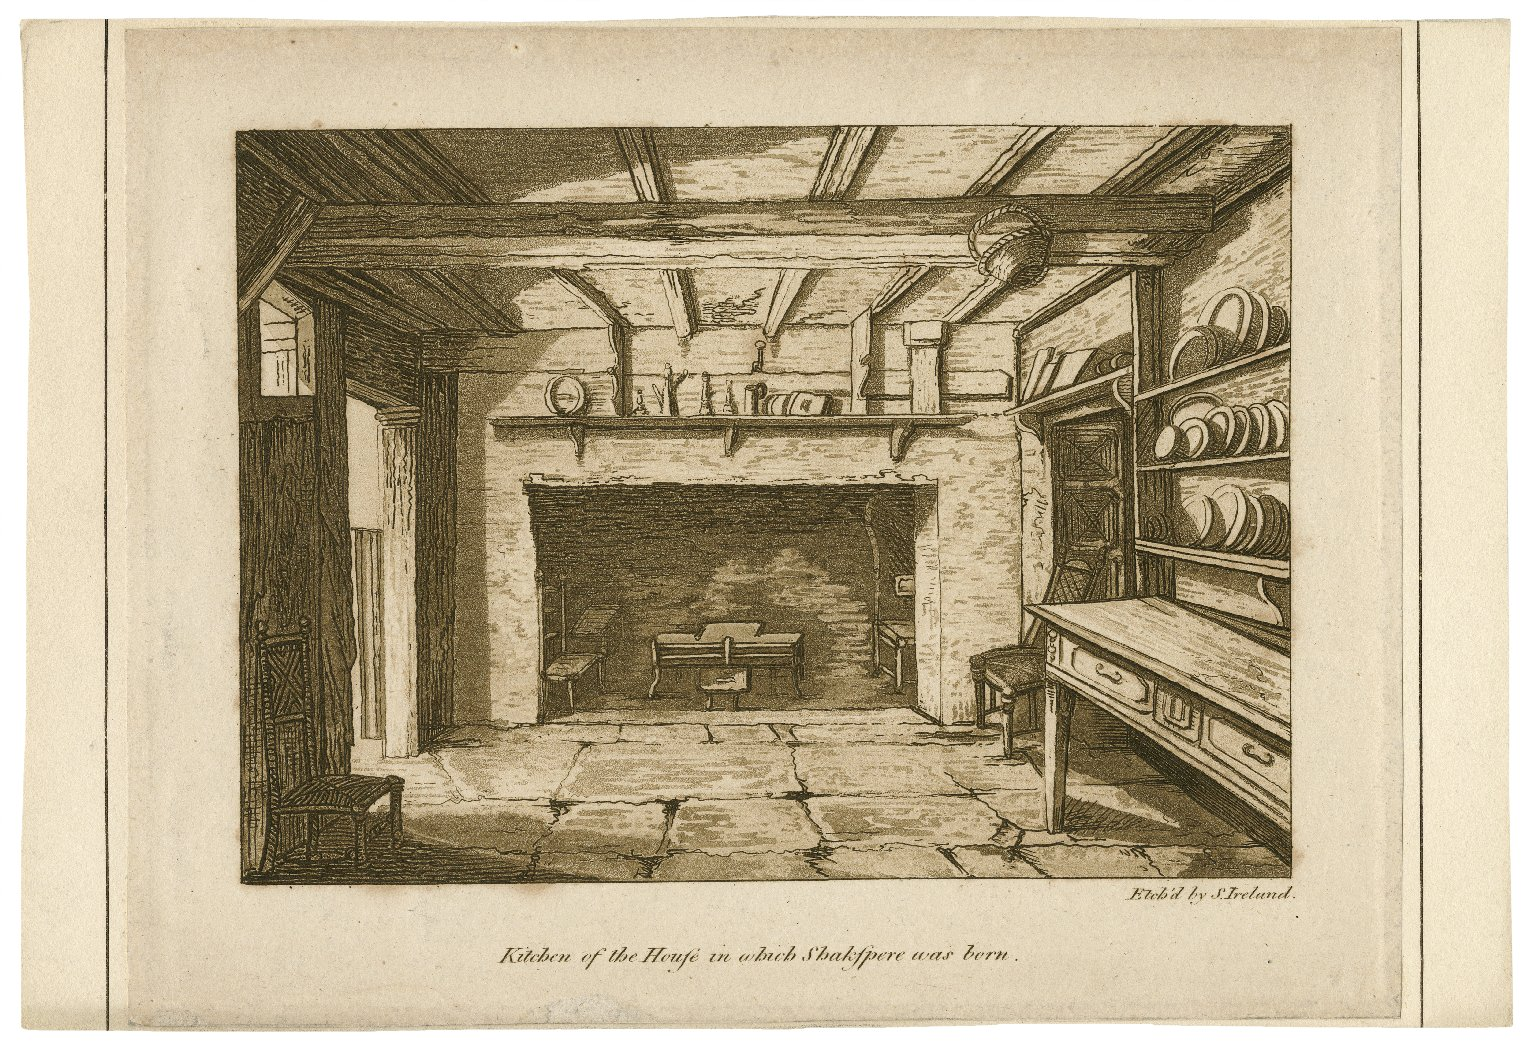 Kitchen of the house in which Shakspere was born [graphic] / etch'd by S. Ireland.